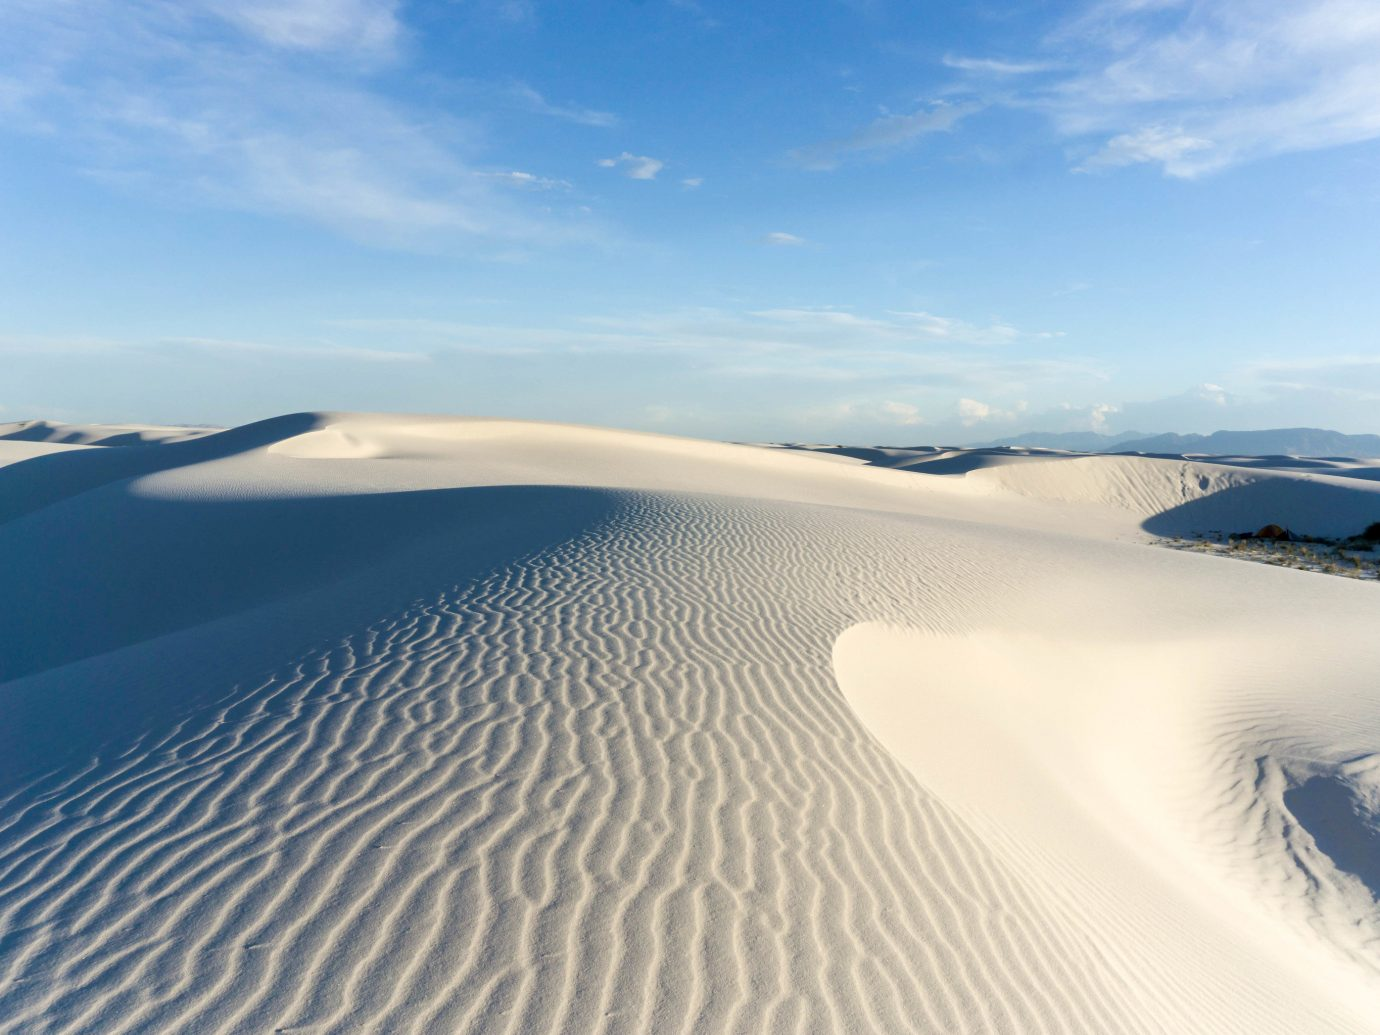 Travel Tips Trip Ideas sky Nature outdoor habitat water snow geographical feature natural environment landform dune ecosystem sand aeolian landform Sea material plateau clouds day